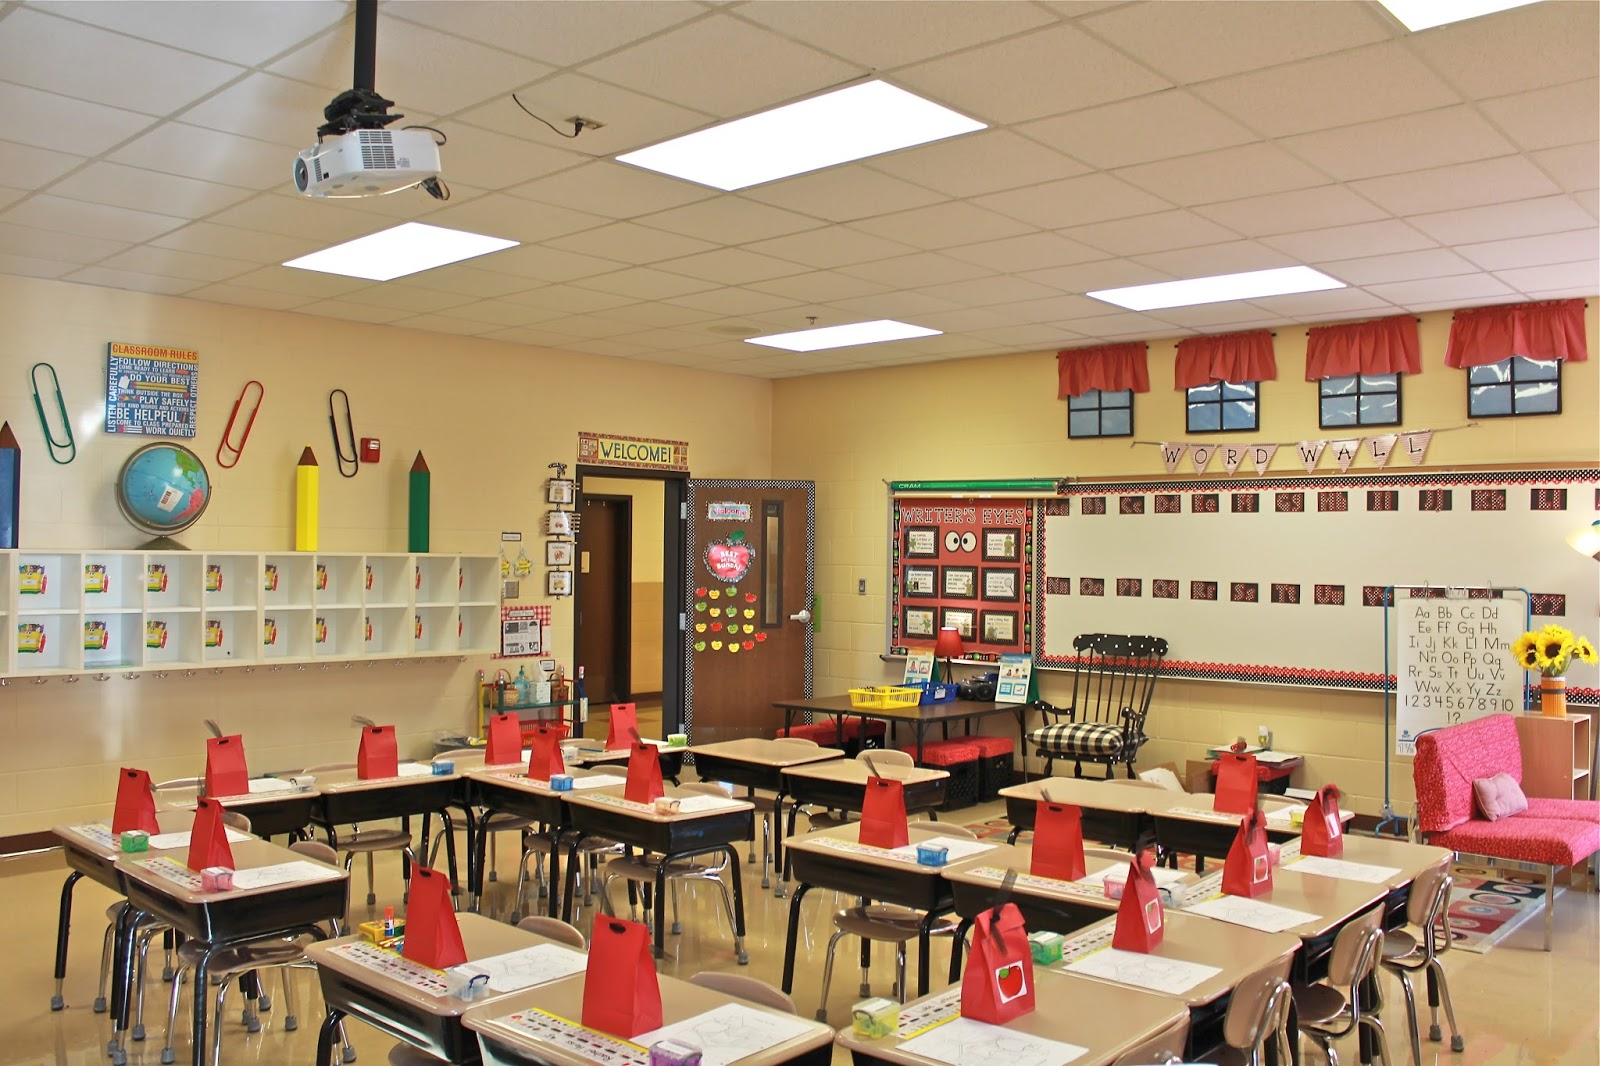 Classroom Floor Plan Examples Wake Up Your Wardrobe What My Classroom Wore